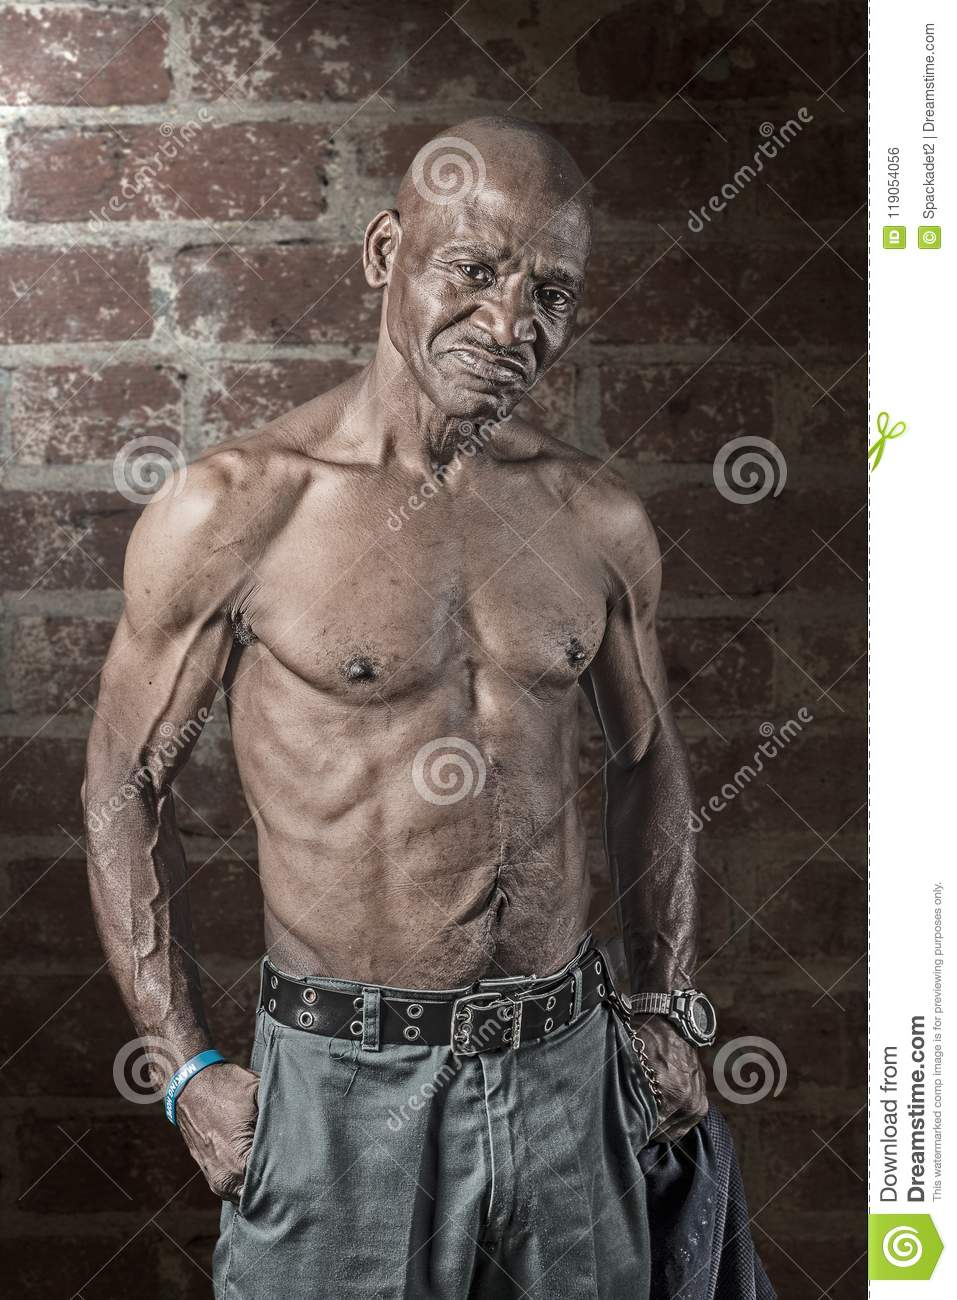 Tough Musular Senior African American Man with large scar on his Abdomen